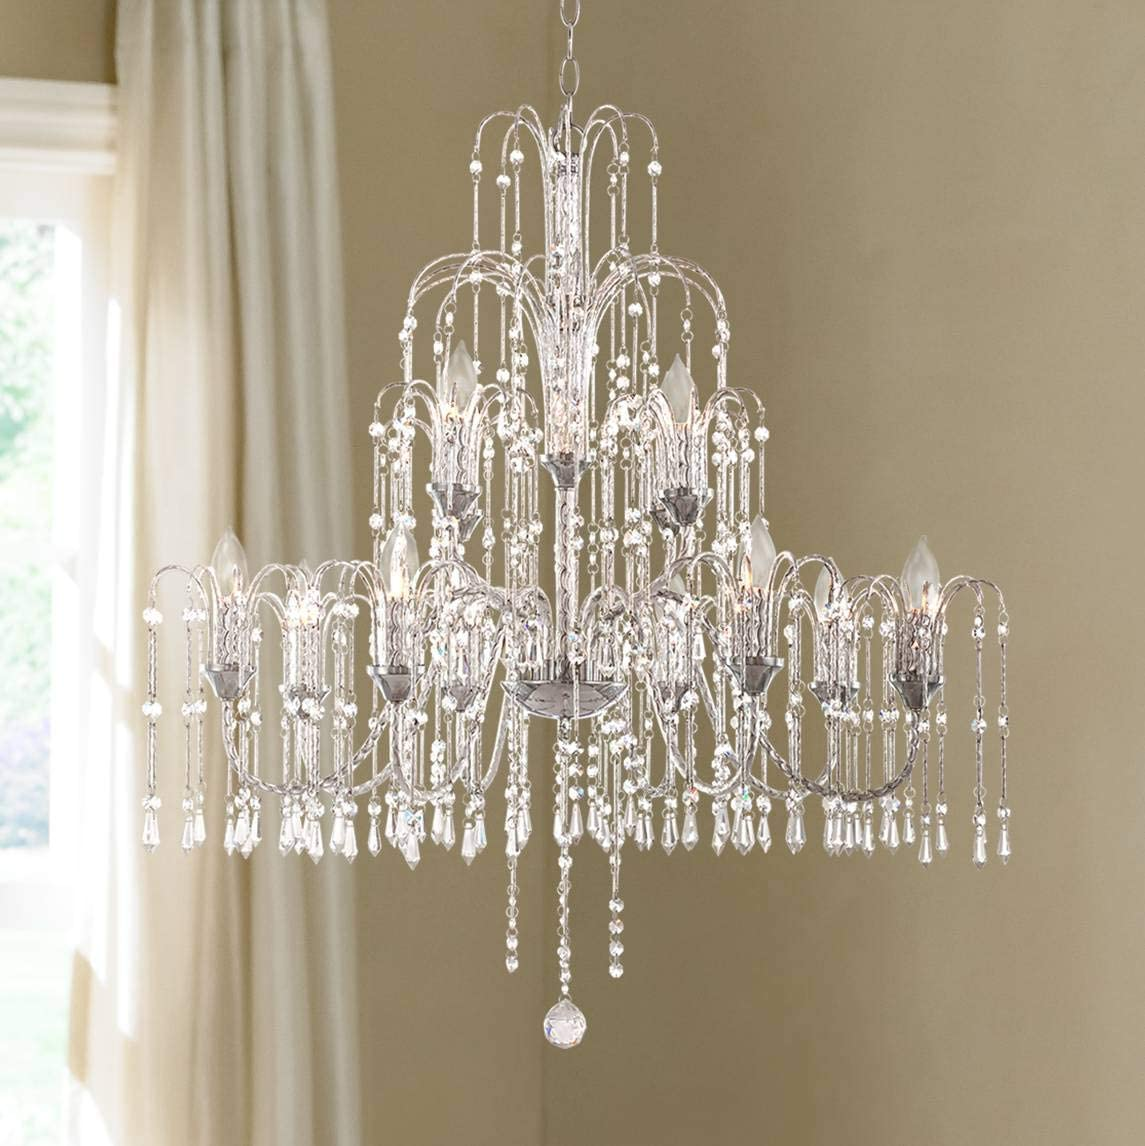 Crystal Rain Chrome Large Chandelier 33 Wide 12-Light Fixture for Dining Room House Foyer Kitchen Island Entryway Bedroom Living Room – Vienna Full Spectrum